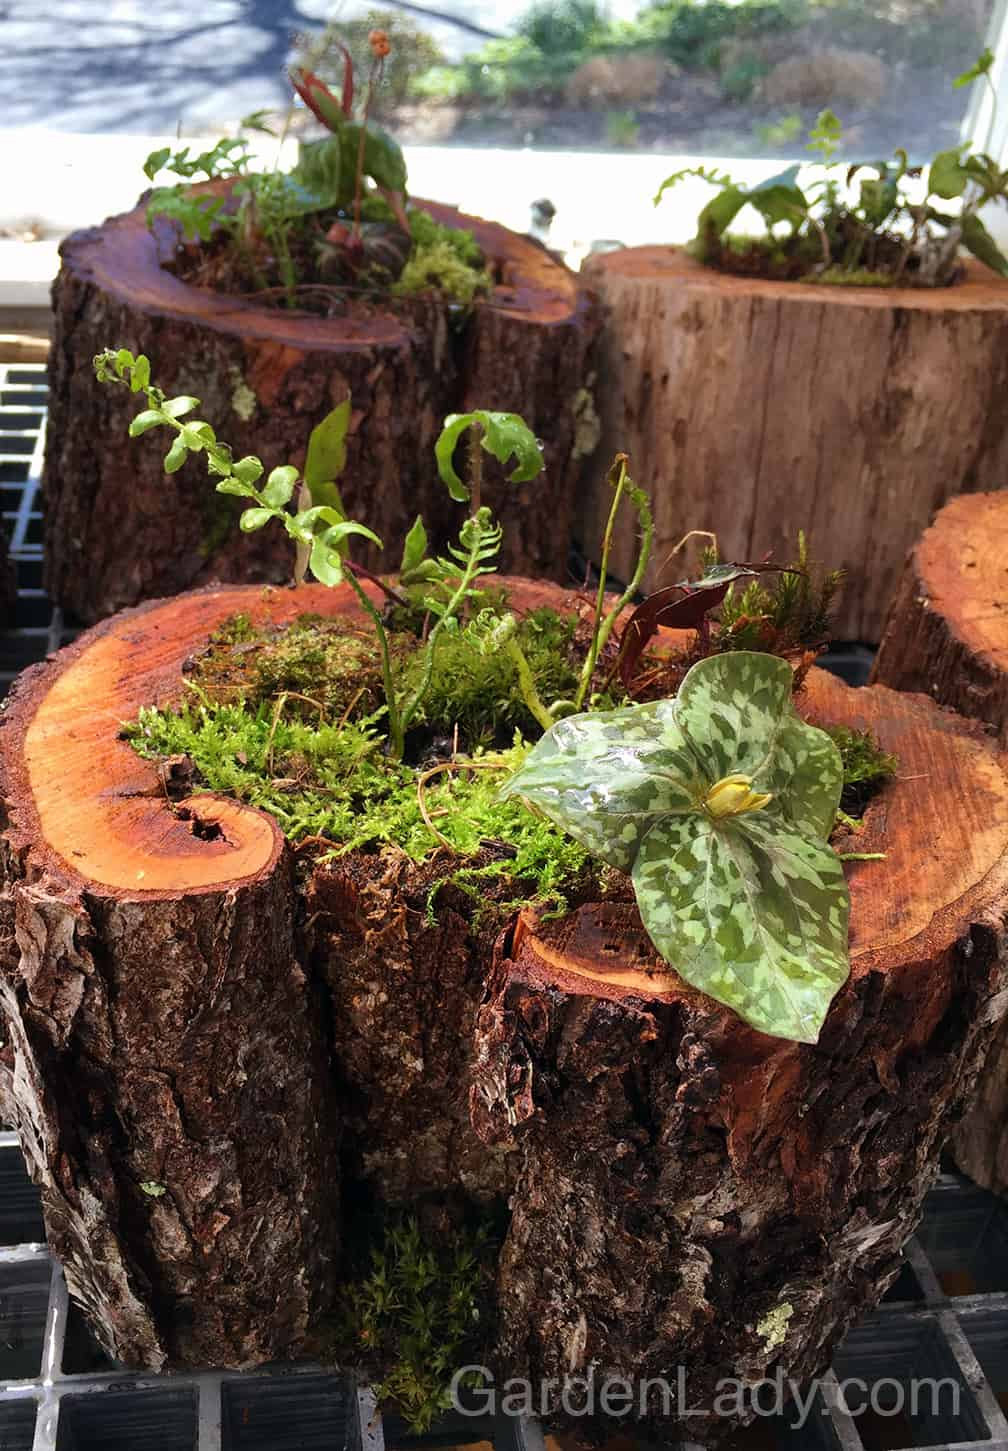 My favorite containers were the cherry logs that had holes and cavities in them. I placed all of them in the solar heated shed to grow on for a day or two before the event.